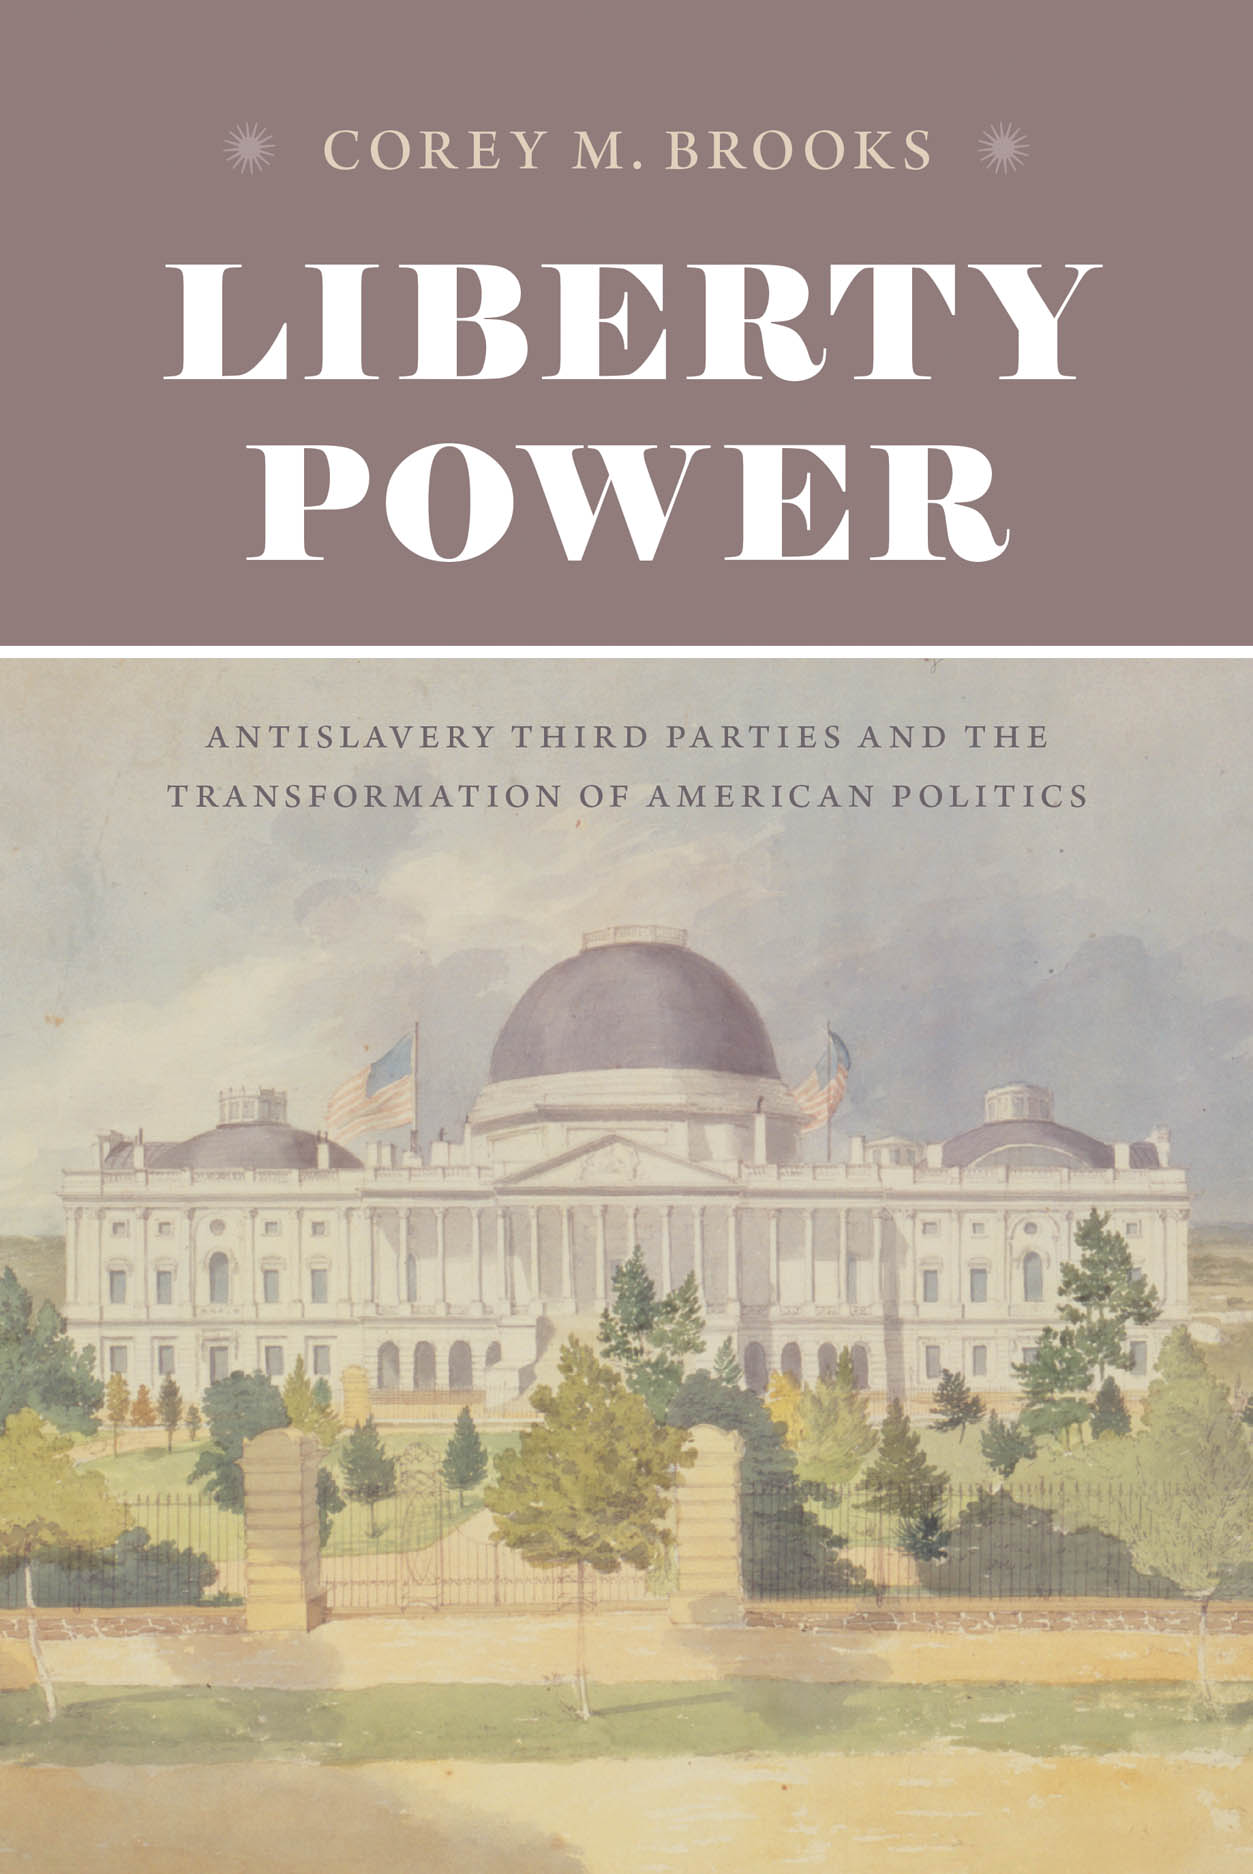 Liberty Power: Antislavery Third Parties and the Transformation of American Politics